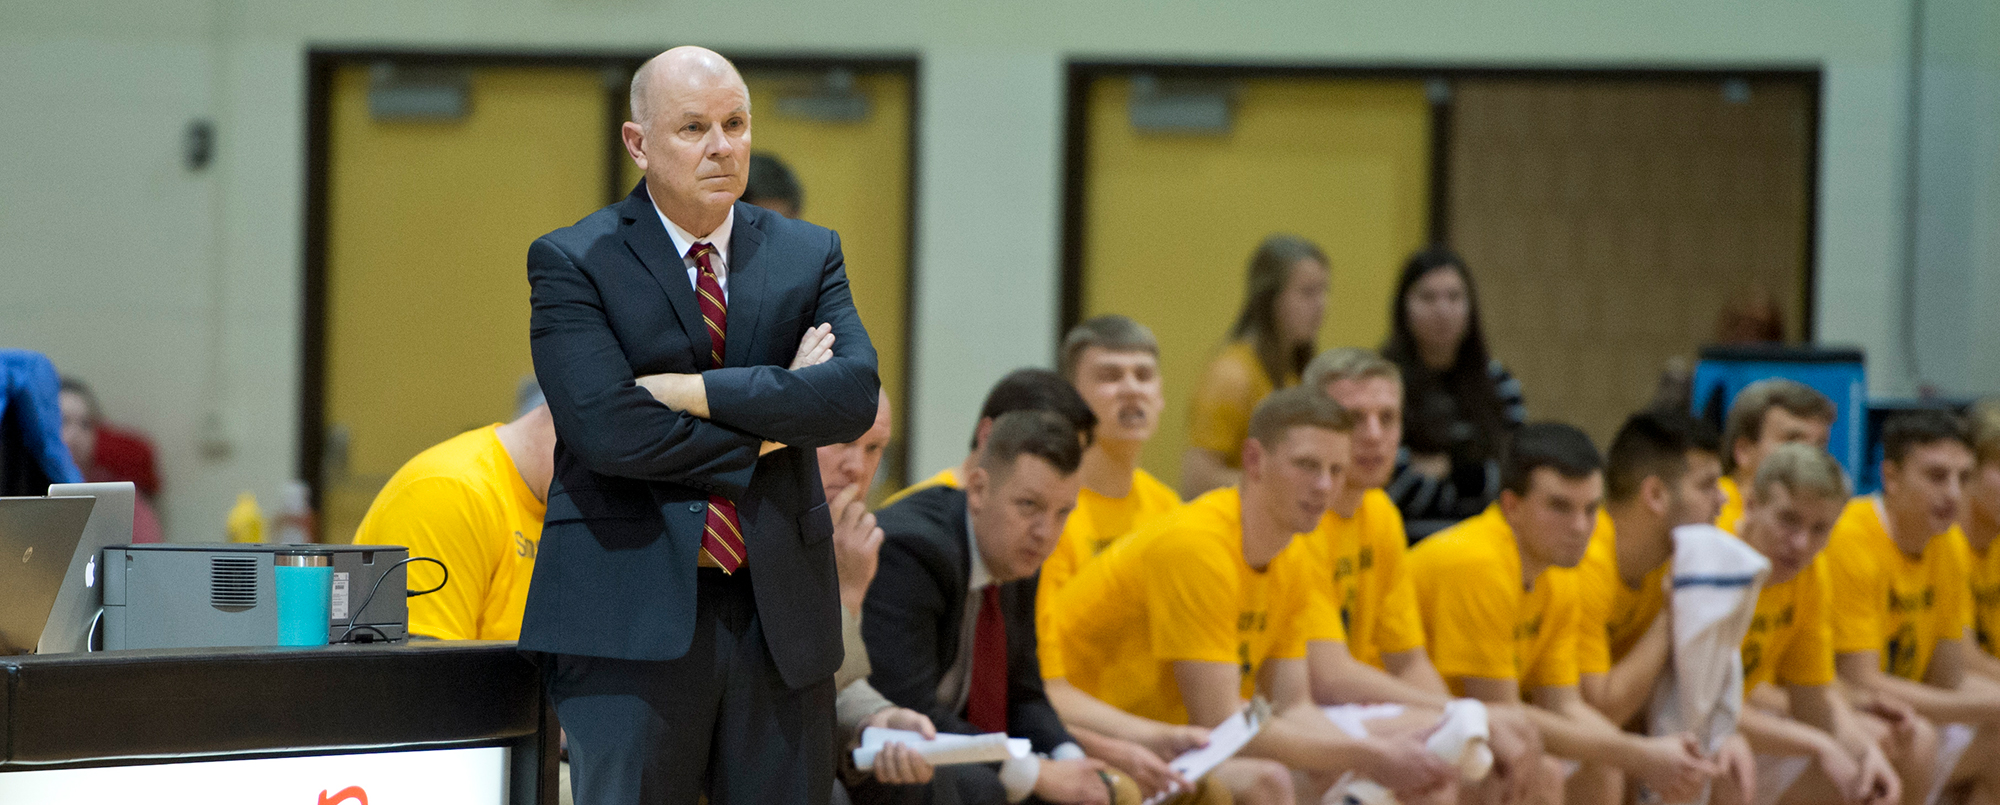 MBB Preview: Storm prepare for tough matchup at Coe